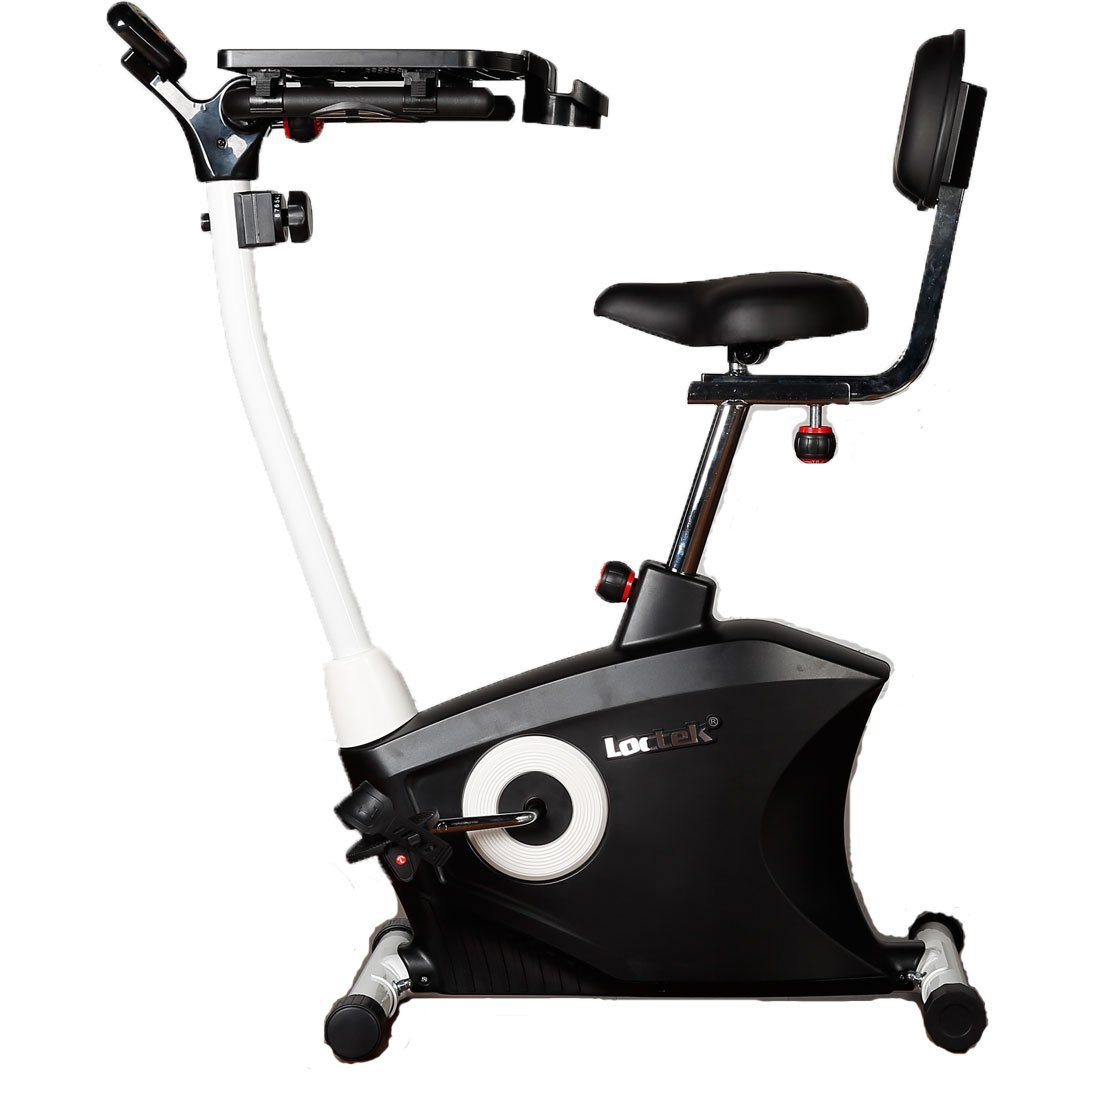 Peachy Desk Bikes Loctek Ergonomic Download Free Architecture Designs Intelgarnamadebymaigaardcom